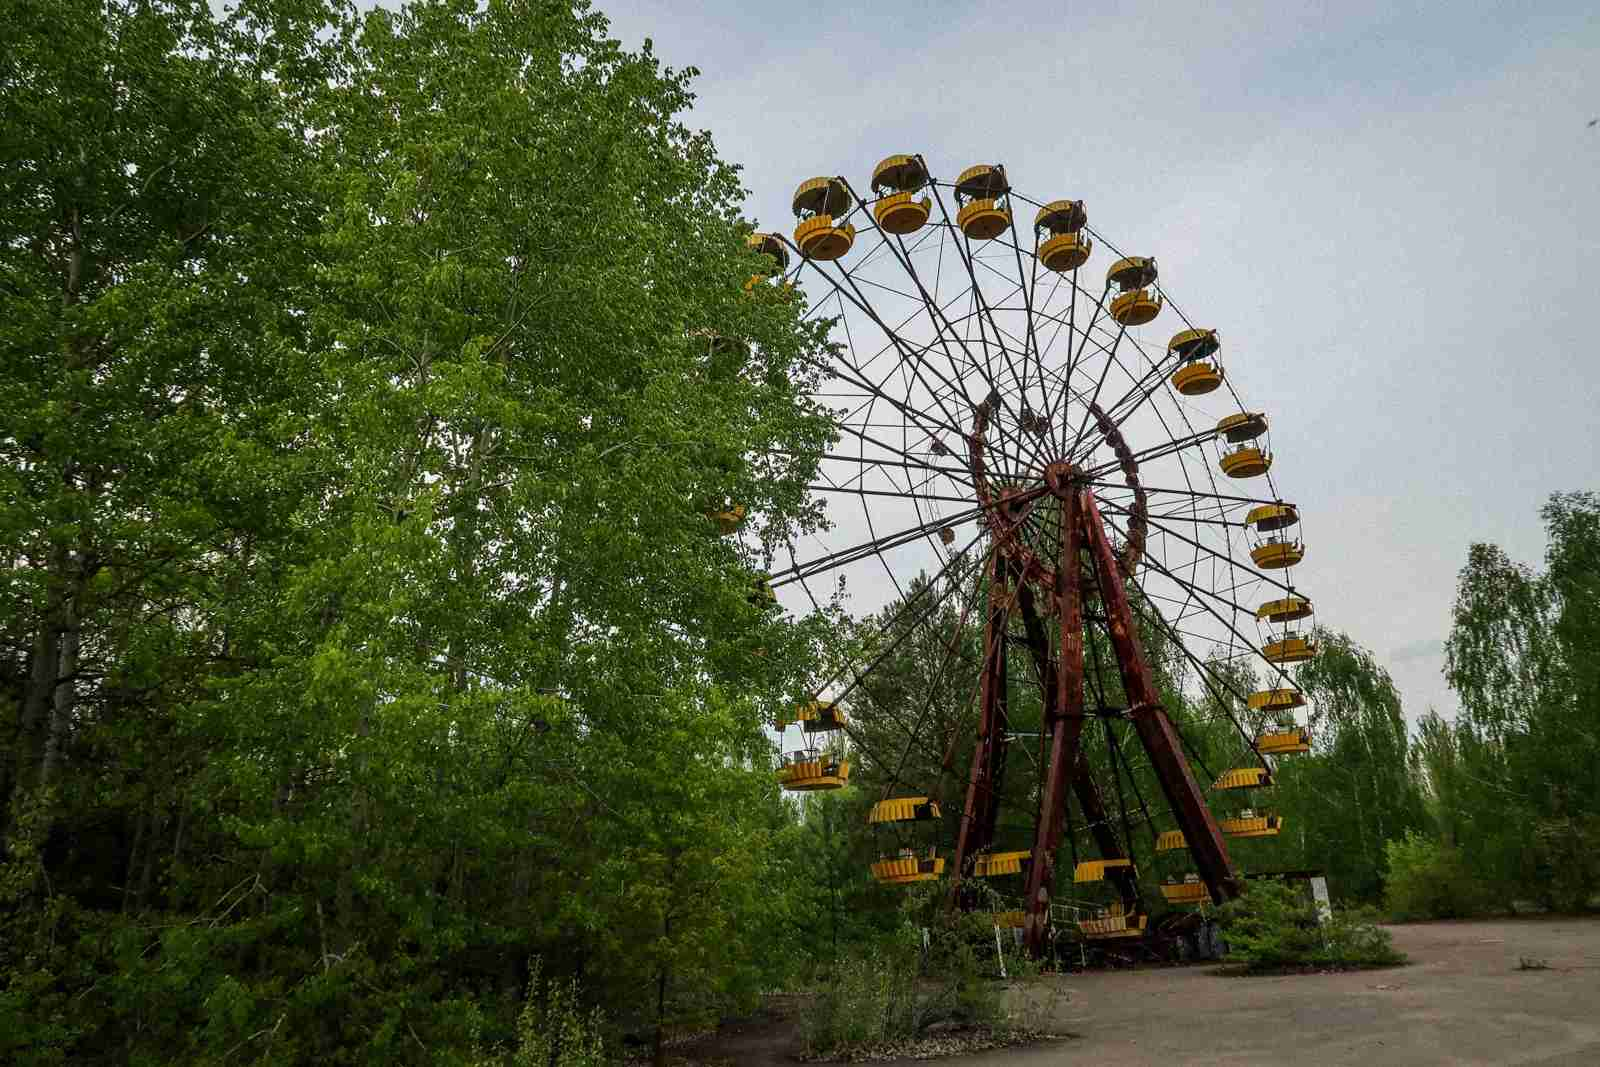 Chernobyl, Ukraine. (Photo by Ben Smithson)